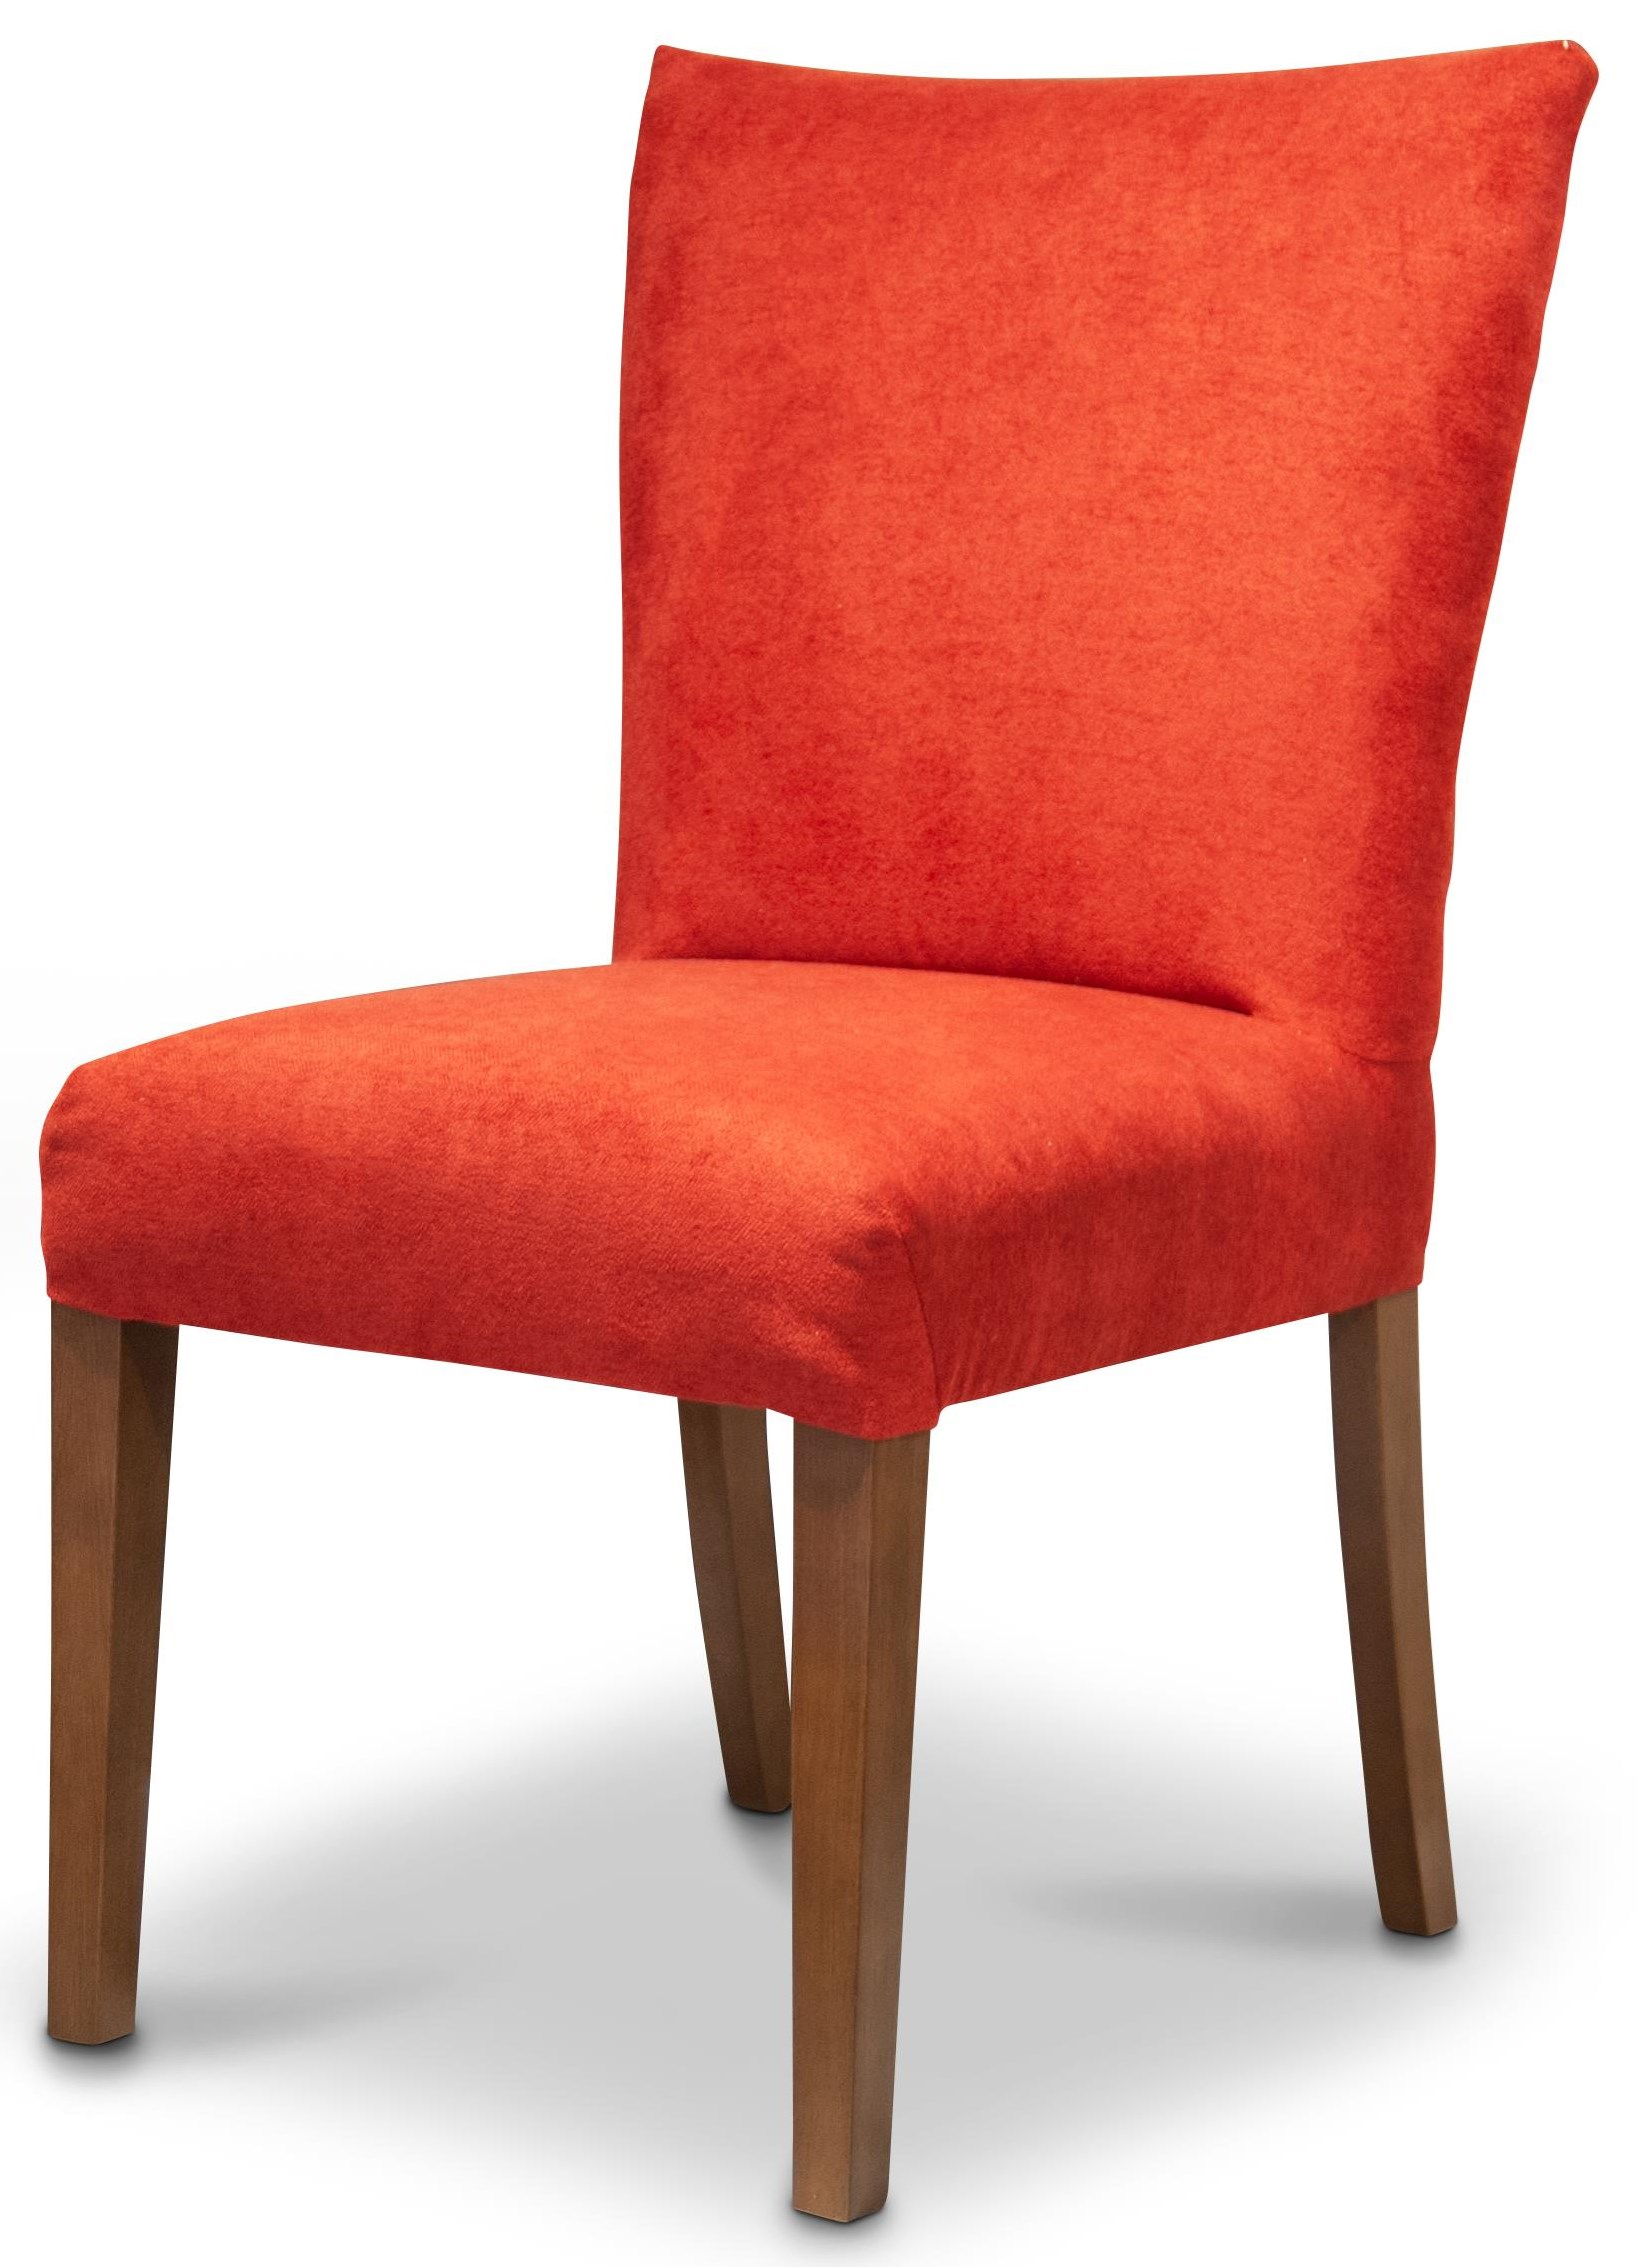 Jaz Jaz Side Chair by Best Home Furnishings at Morris Home